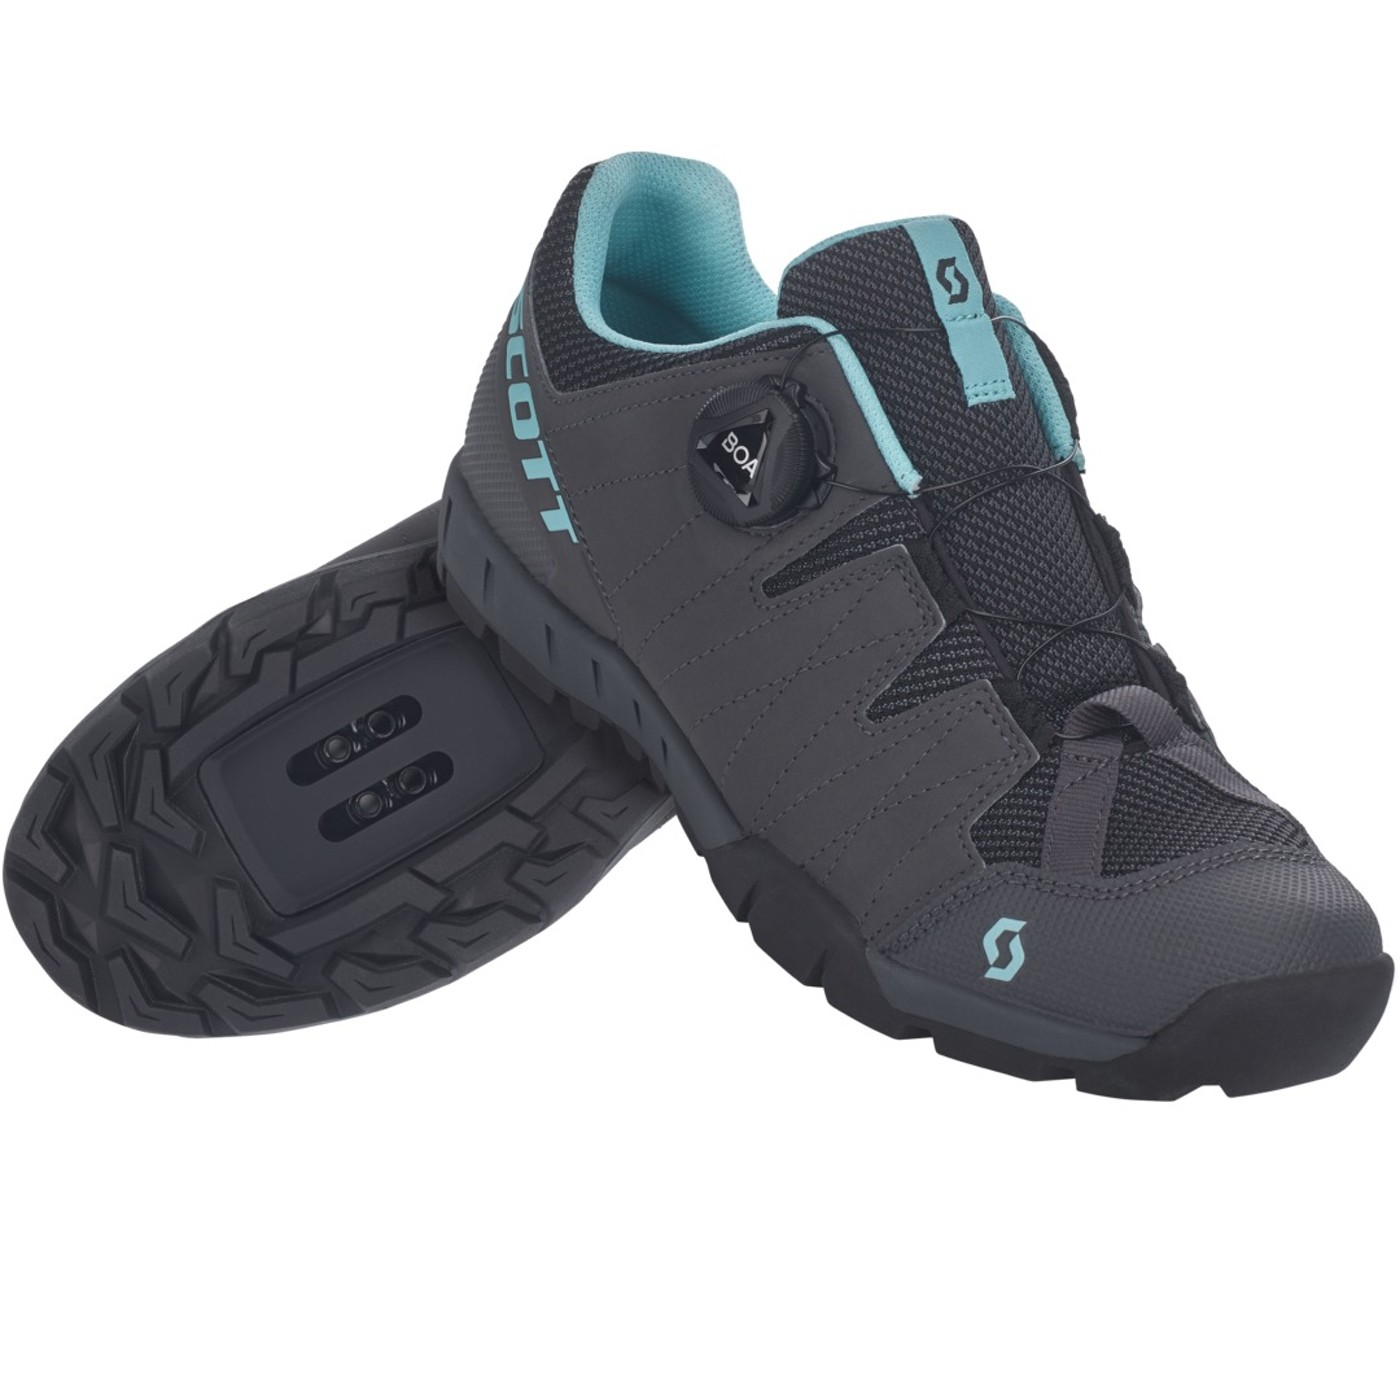 SCOTT Sport Trail BOA® Damenschuh - Damen